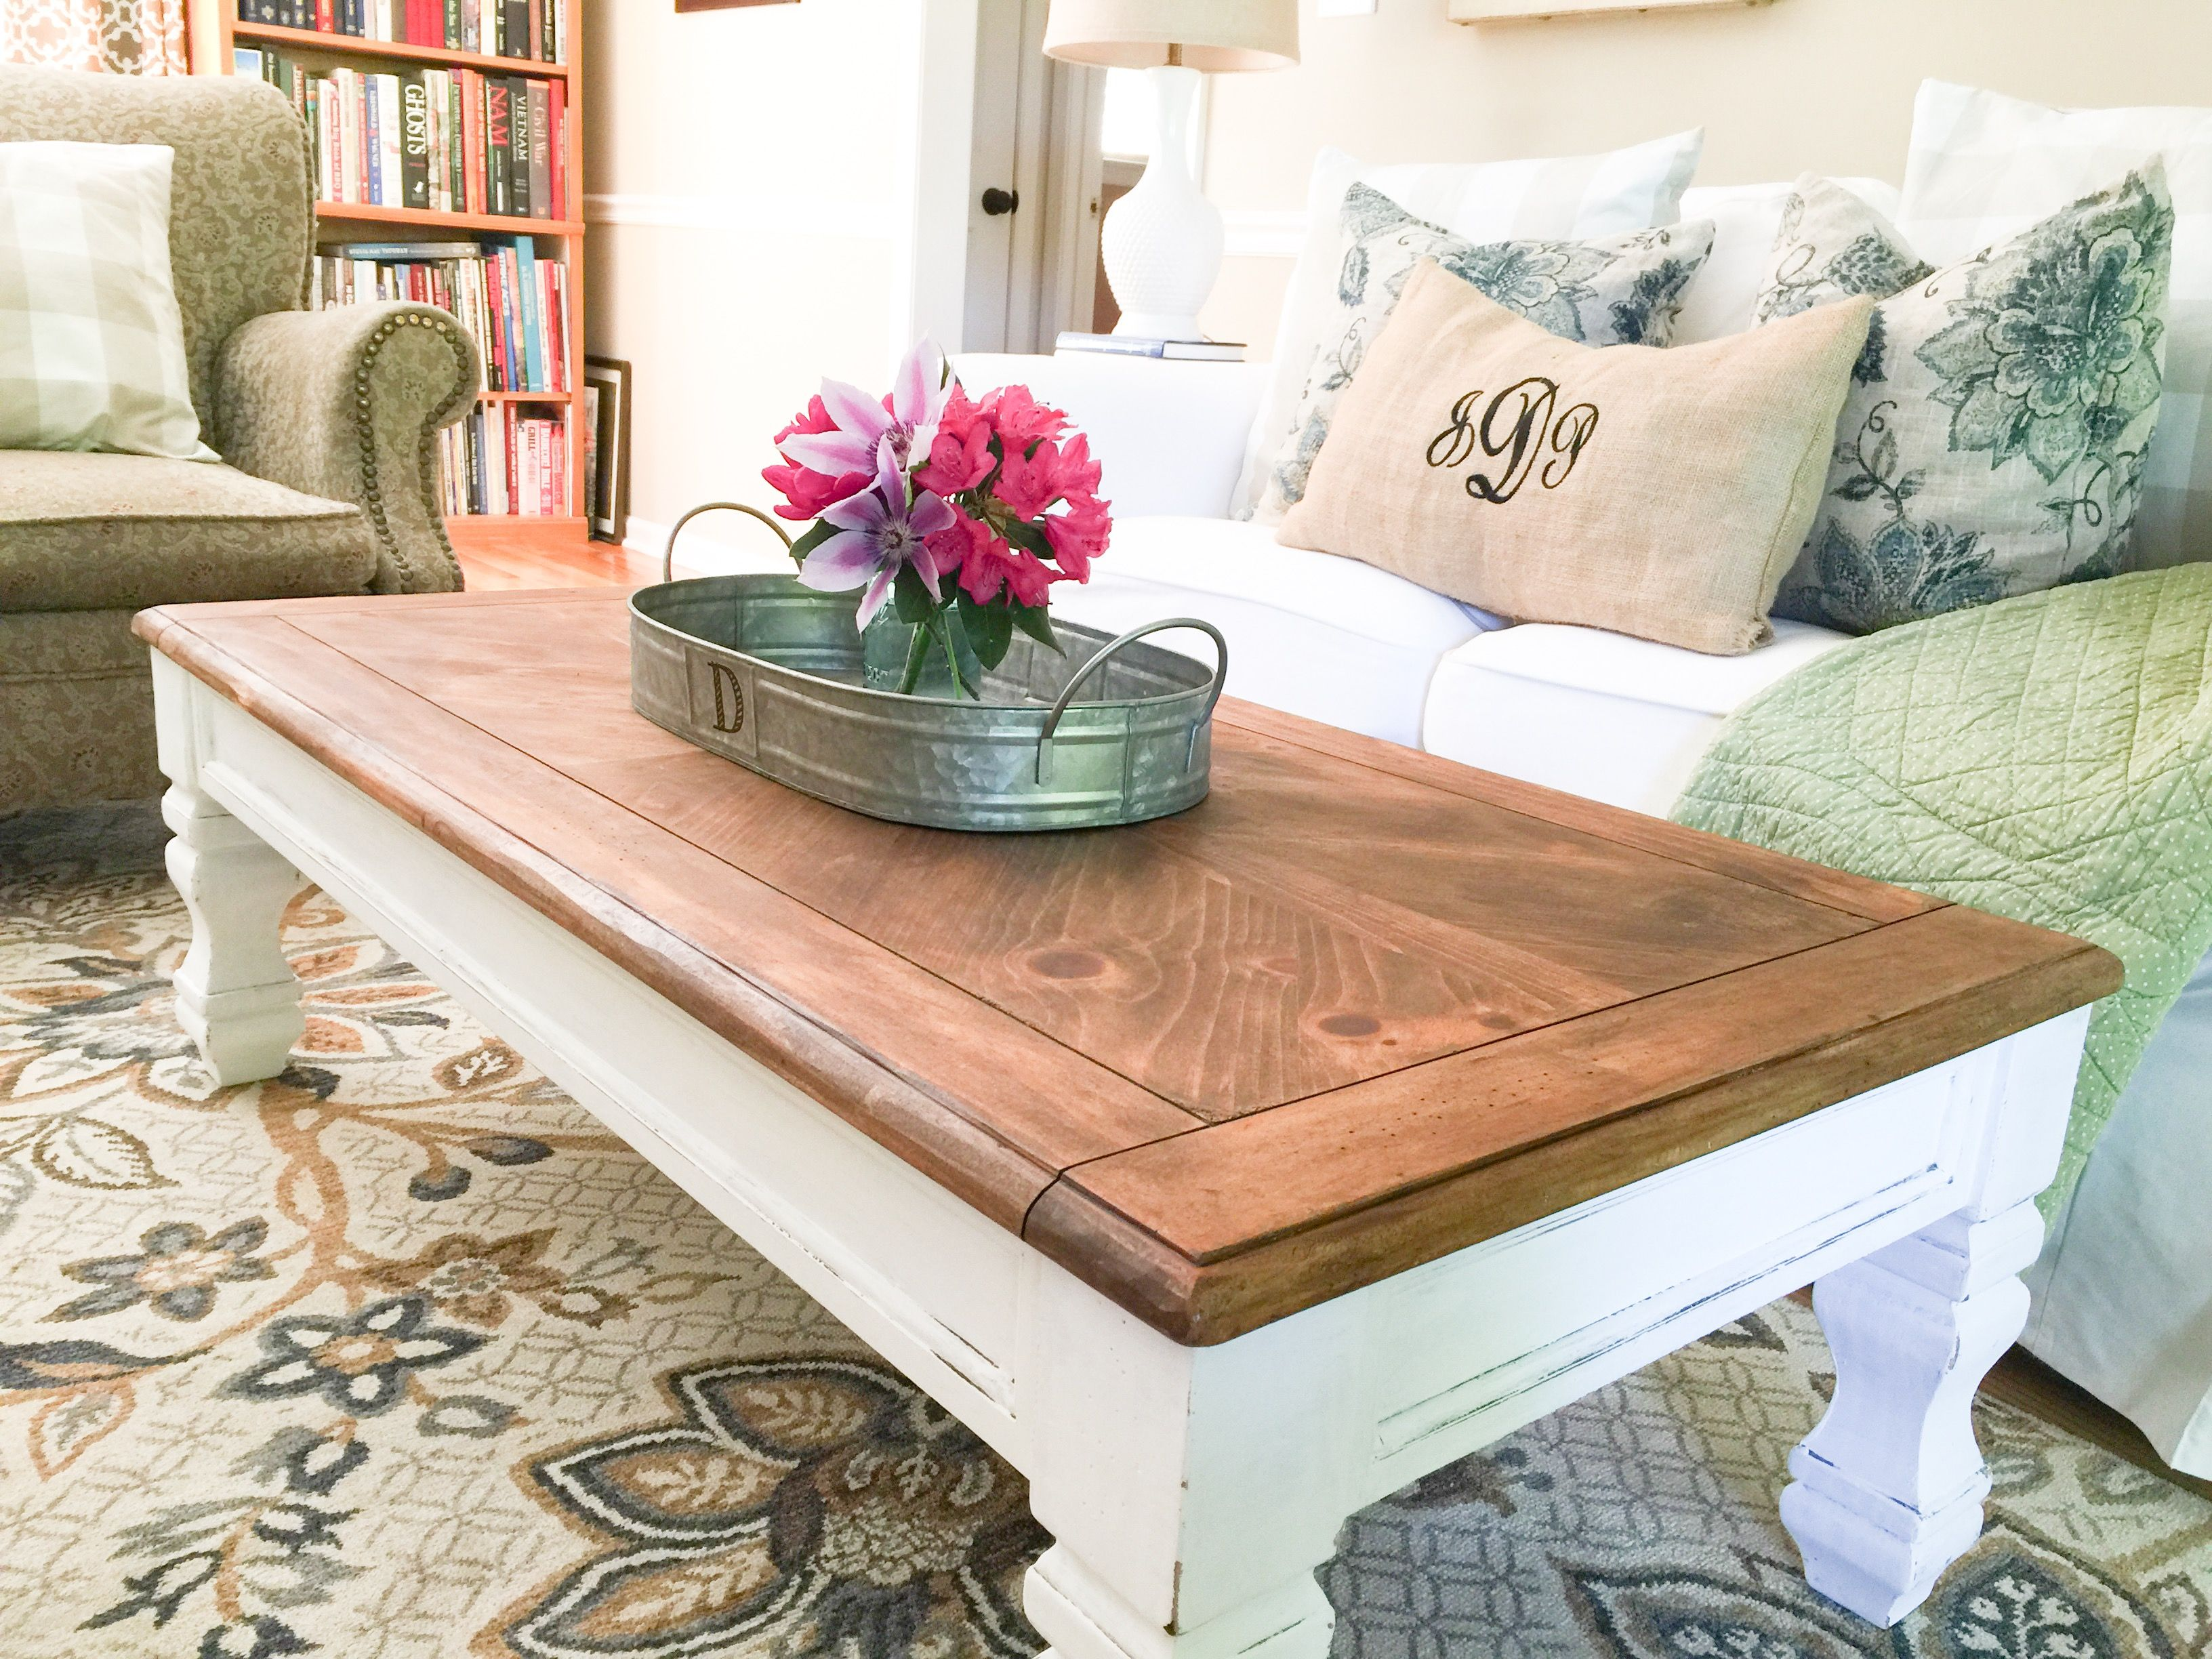 Diy farmhouse coffee table http www southerncurated com 2017